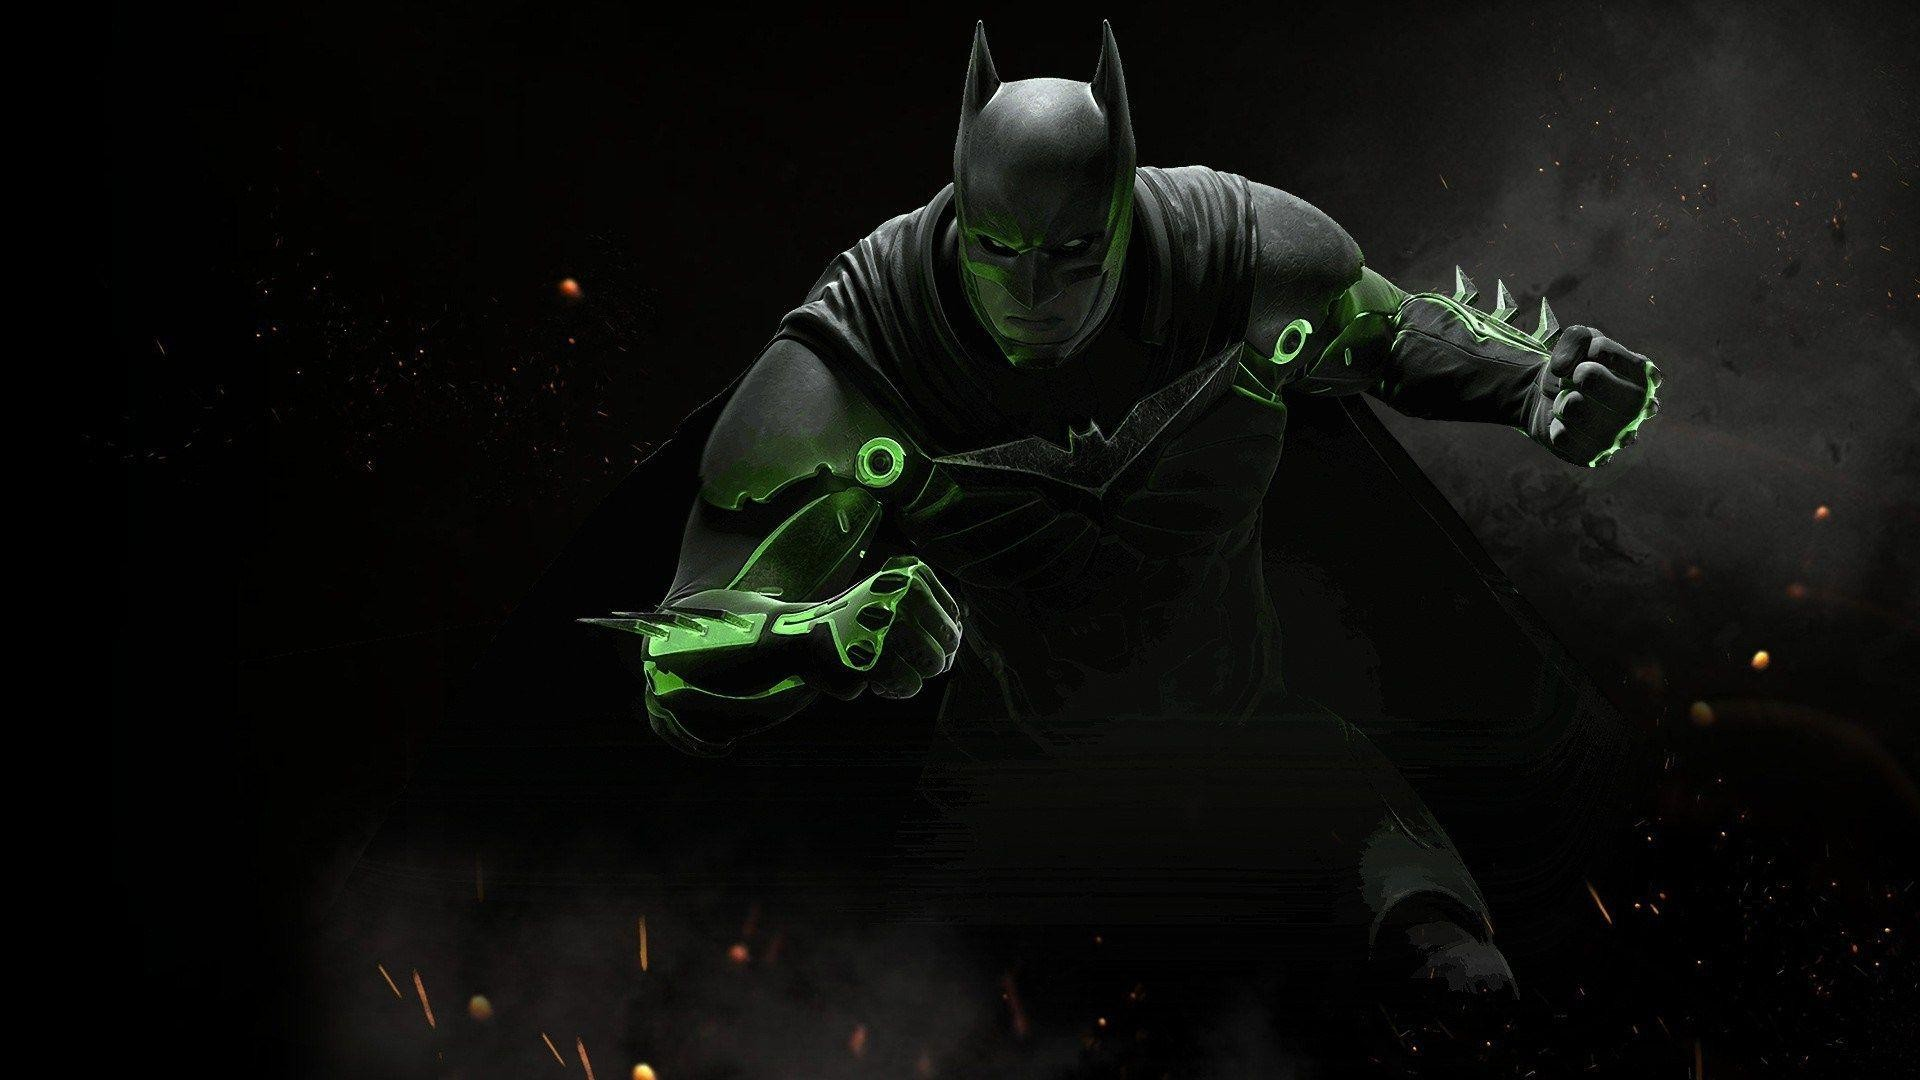 Injustice 2 wallpapers 81 images 3840x2160 injustice 2 4k wallpaper voltagebd Image collections